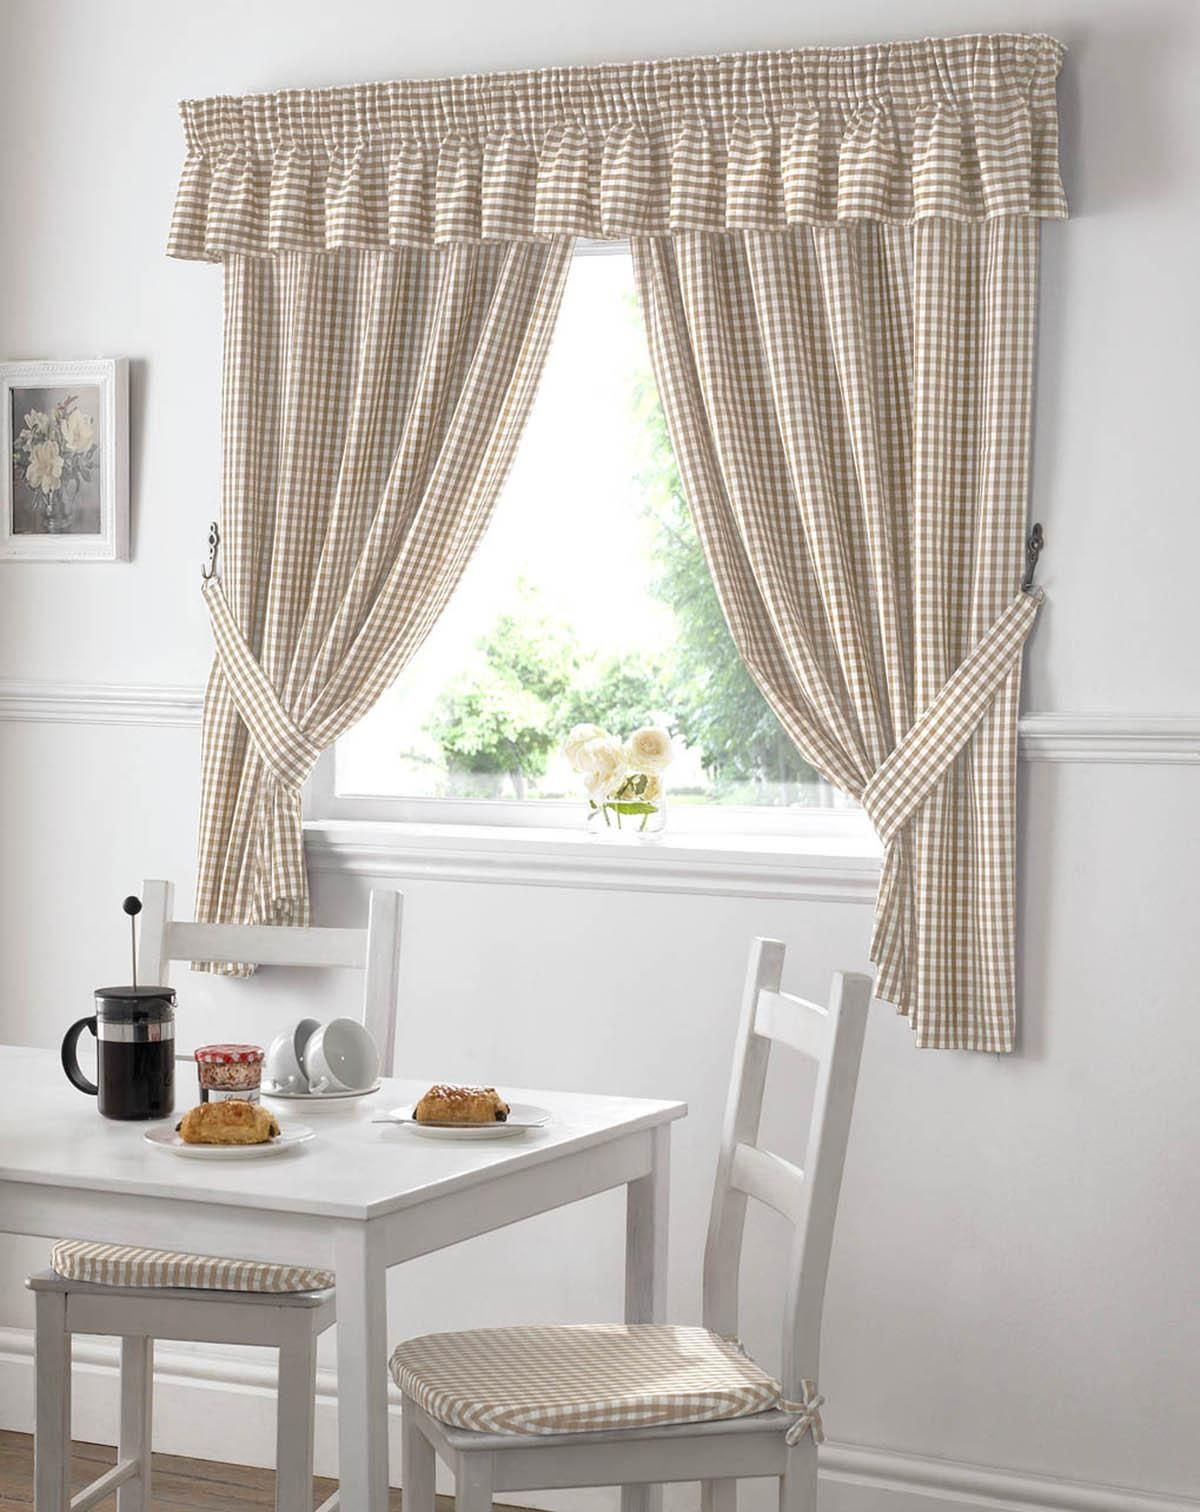 Beige And White Kitchen Curtains  Httplatulufeed Mesmerizing White Kitchen Curtains Decorating Inspiration